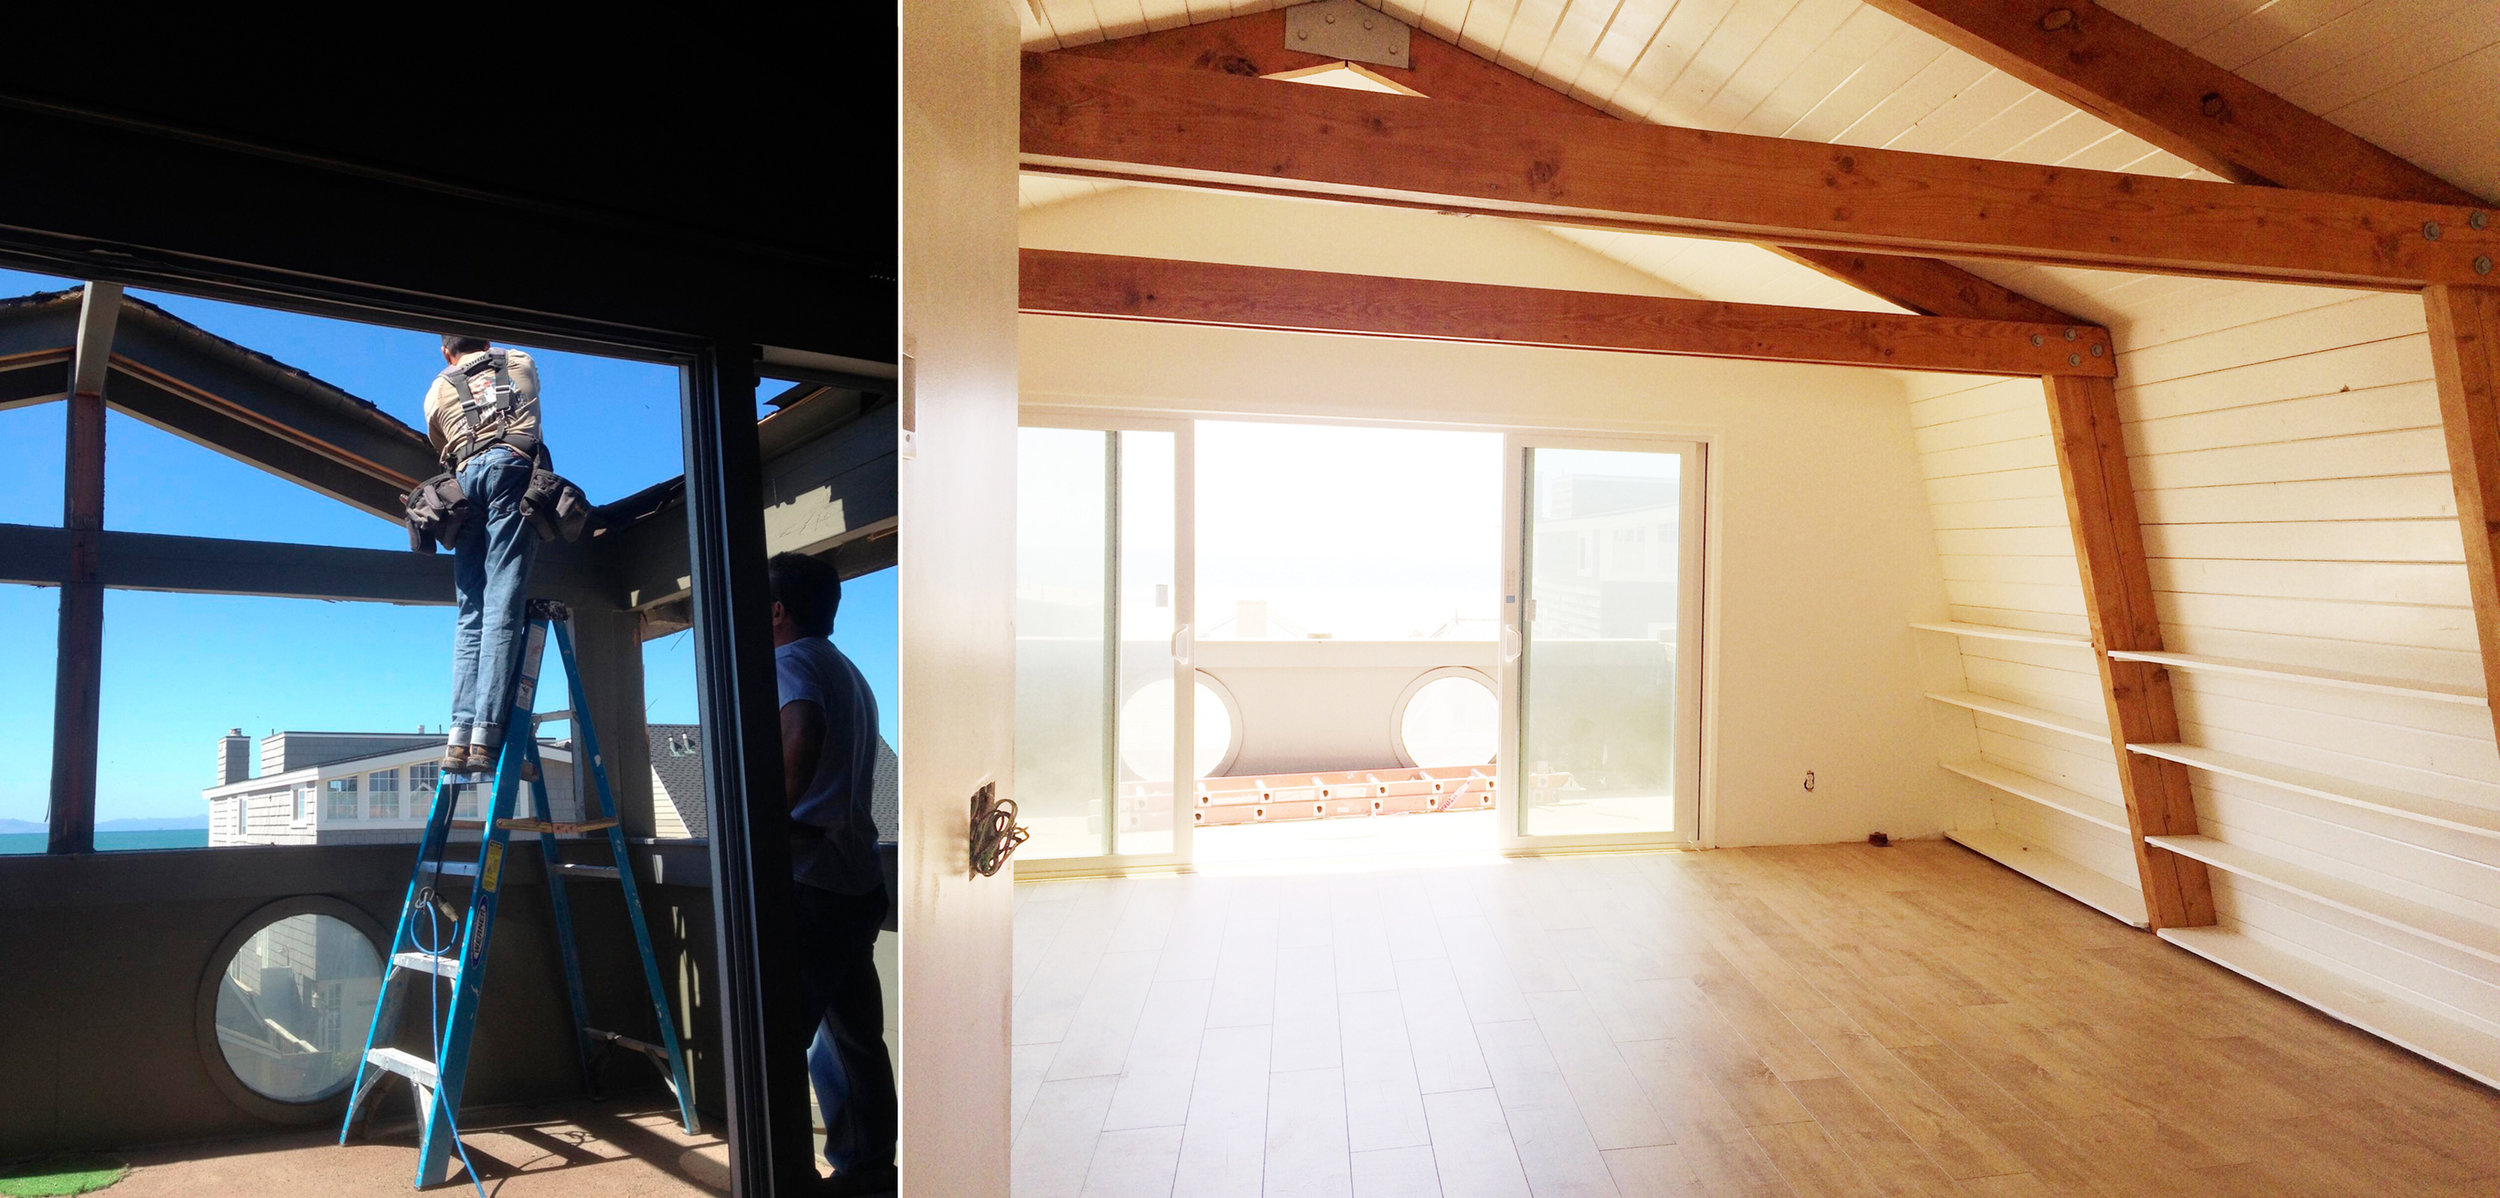 Rooftop is removed off of enclosed balcony and laminate floors are installed in The Beach Lodge living quarters.